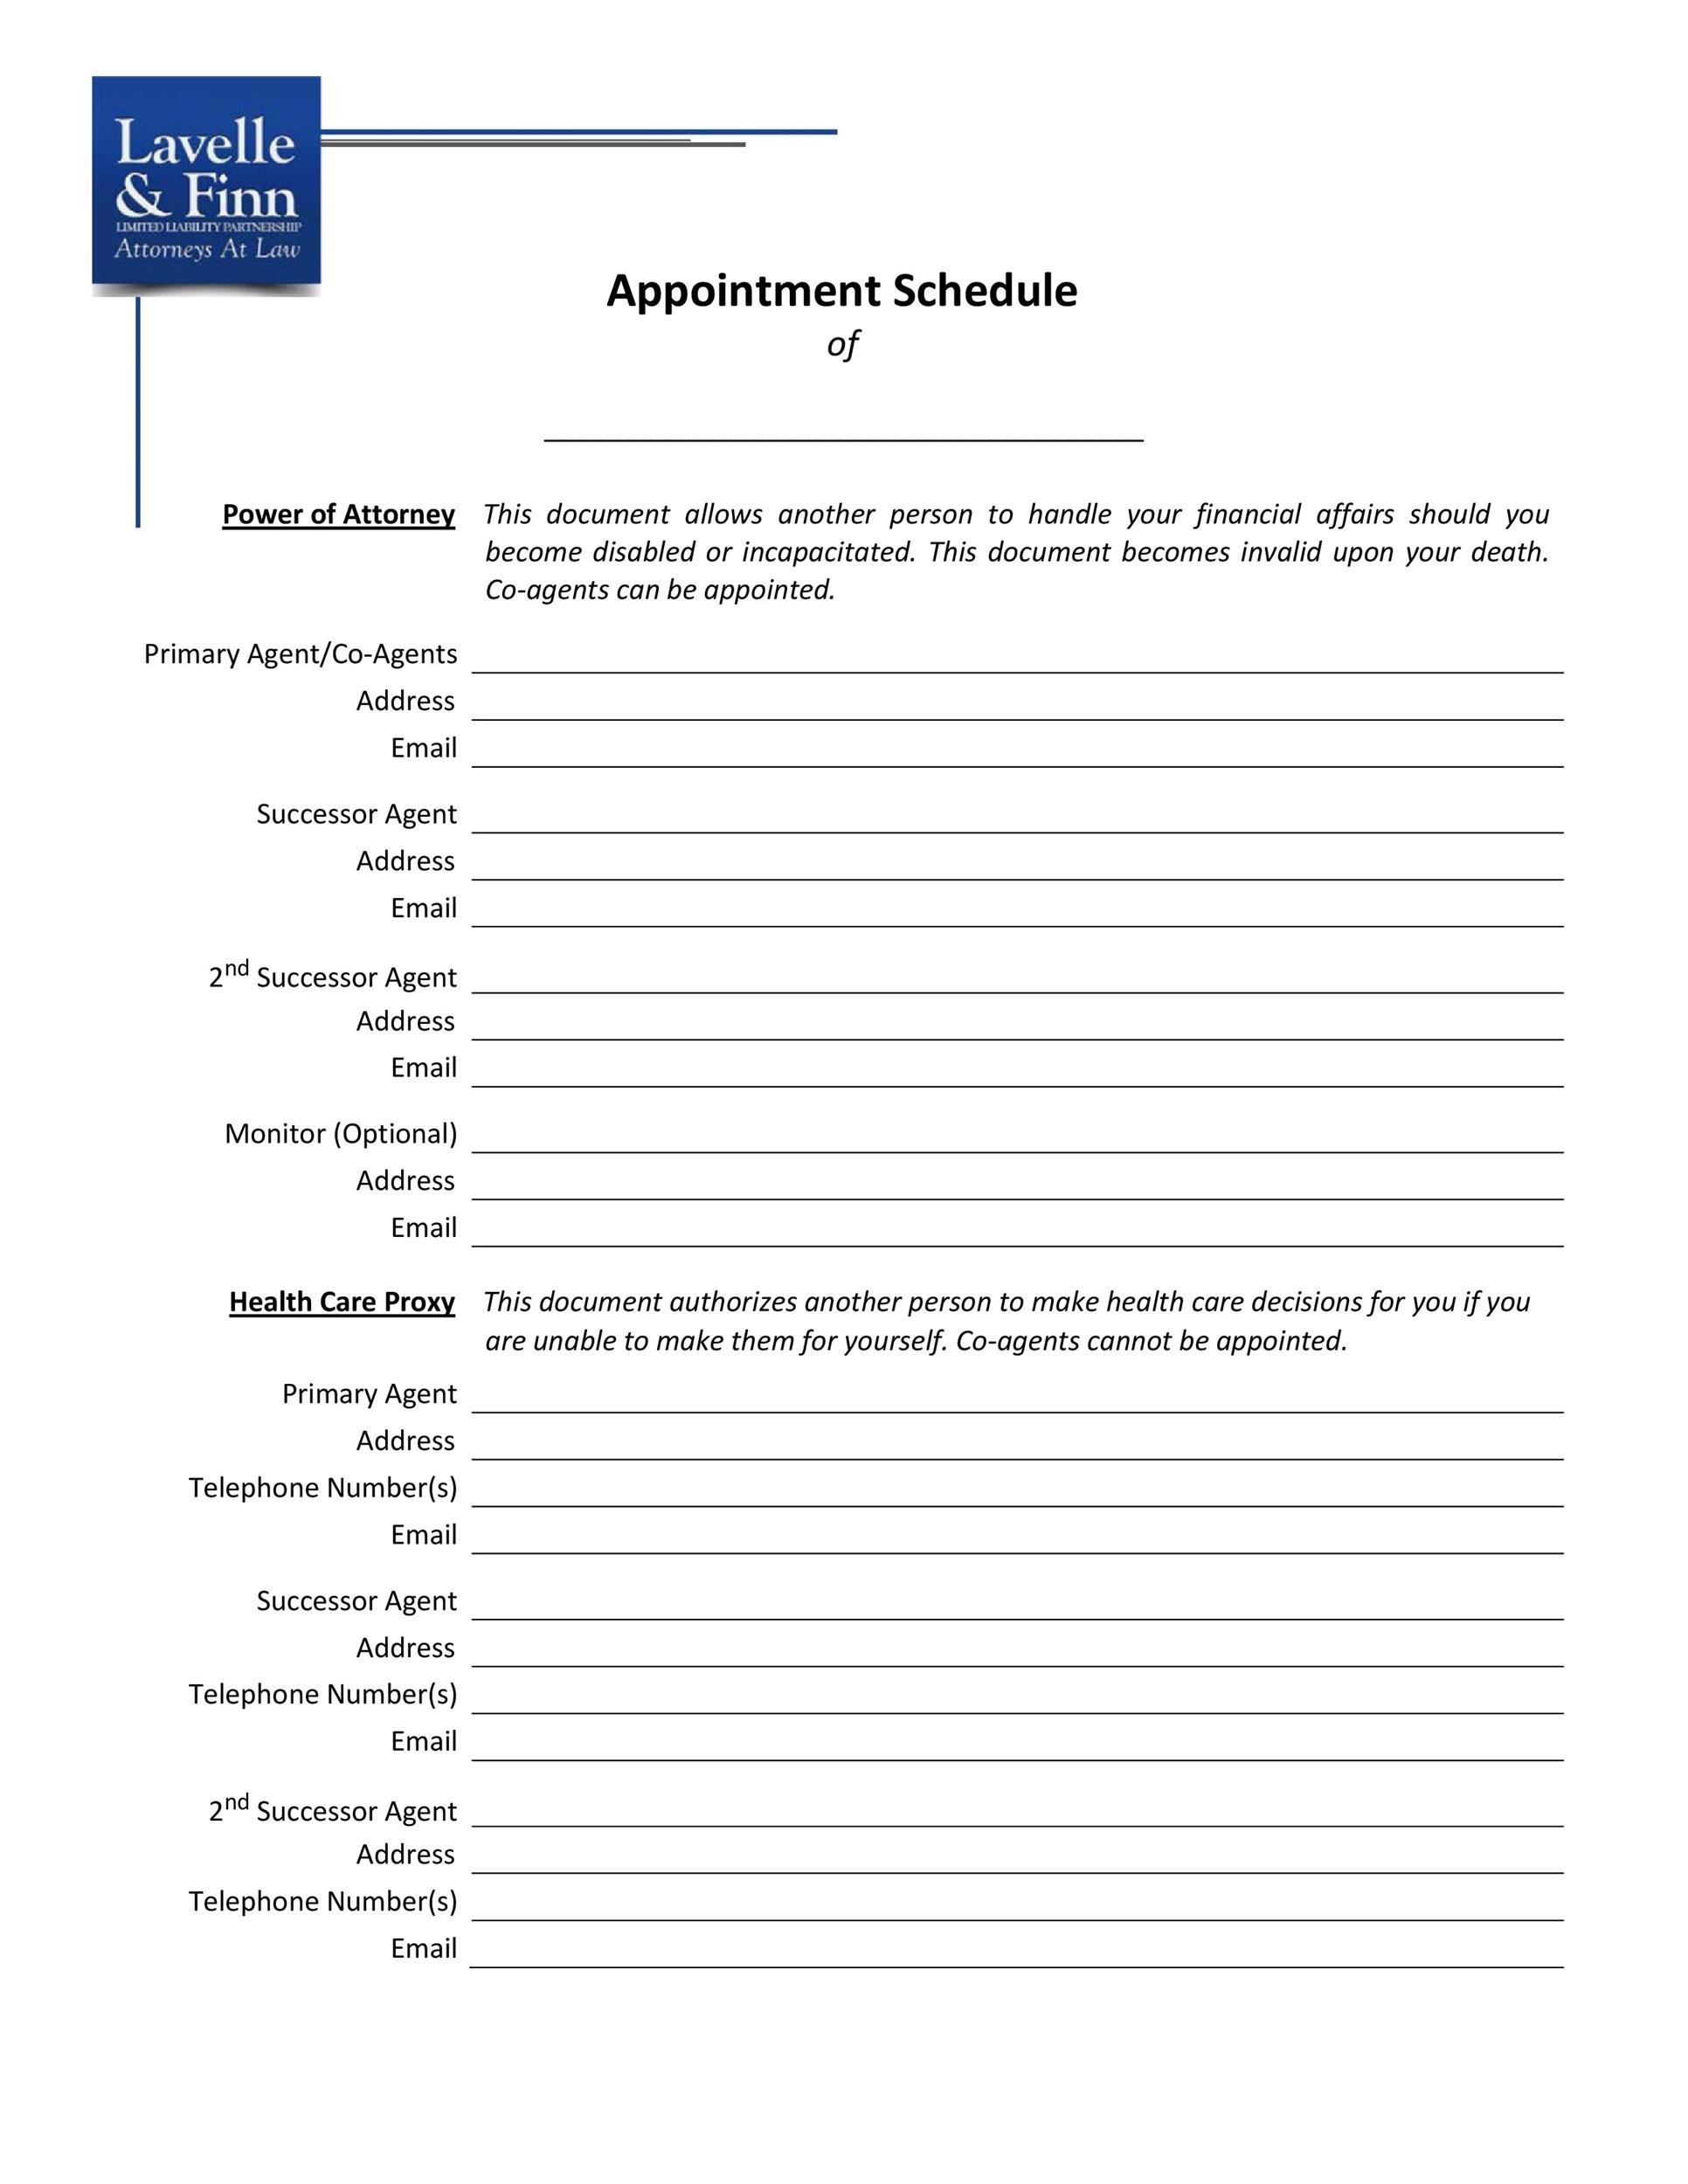 Free appointment schedule template 09